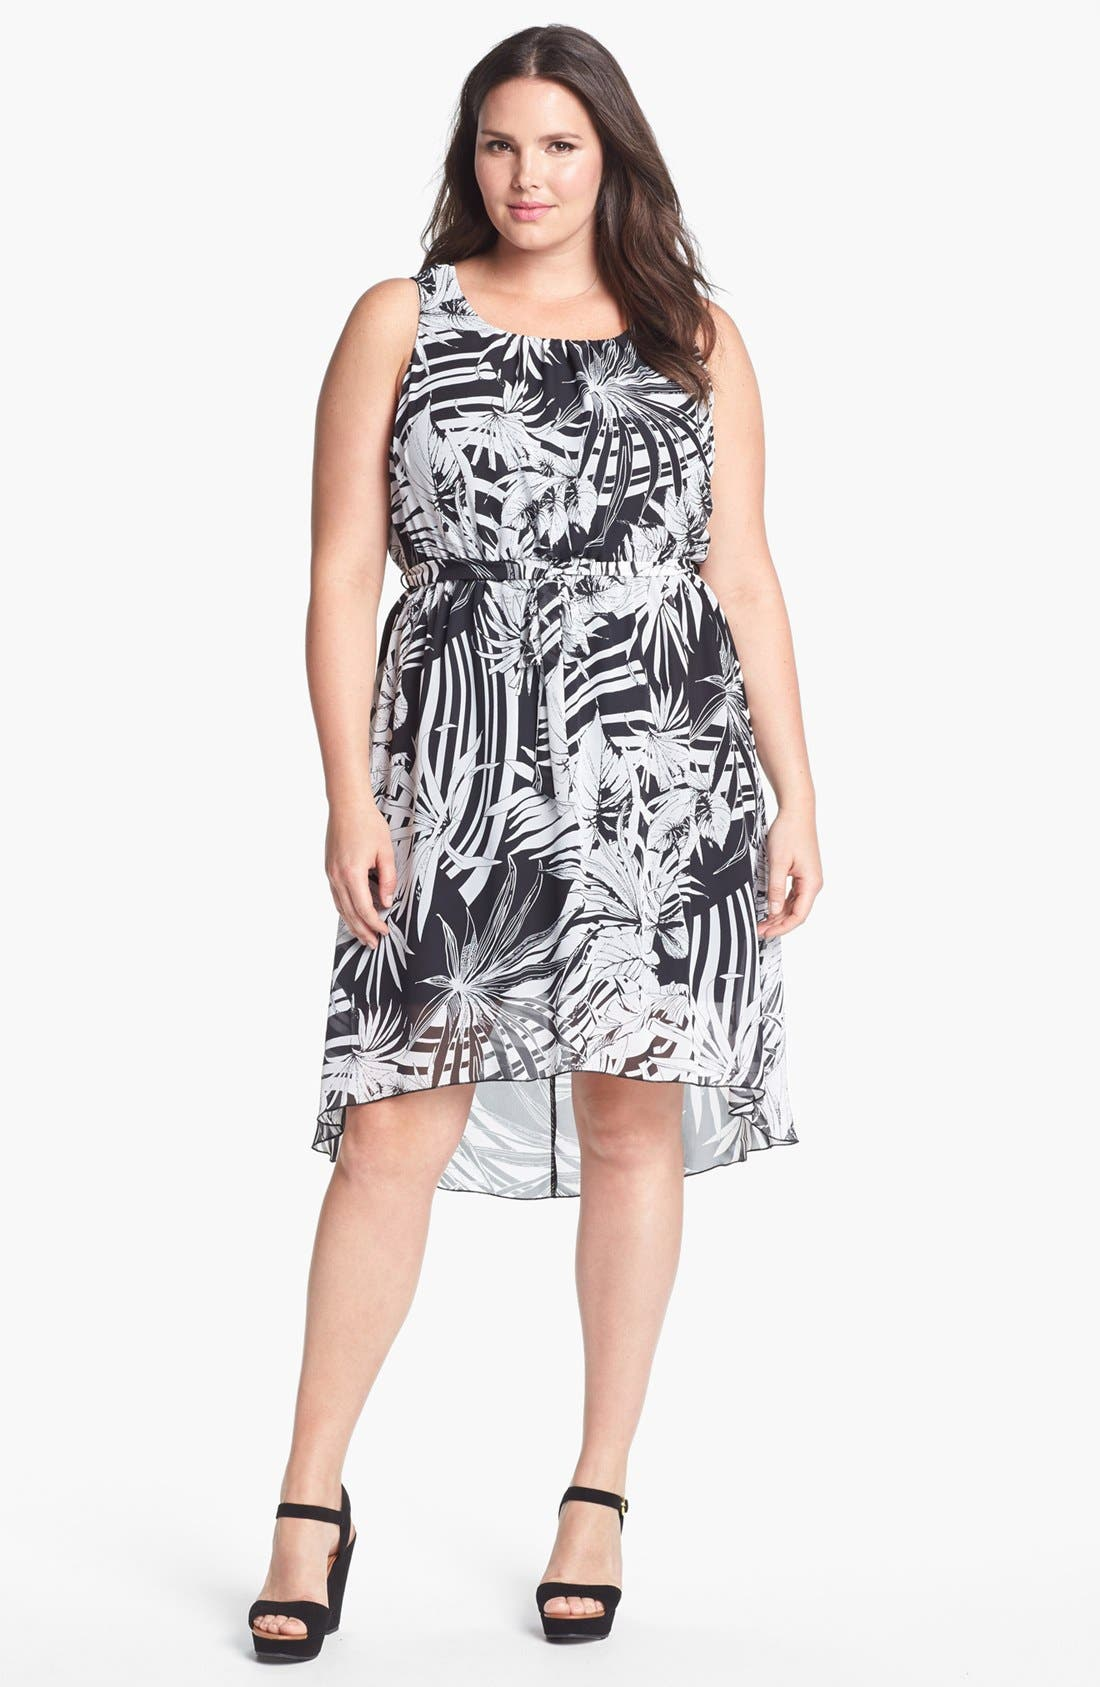 Alternate Image 1 Selected - Evans Print High/Low Chiffon Dress (Plus Size)